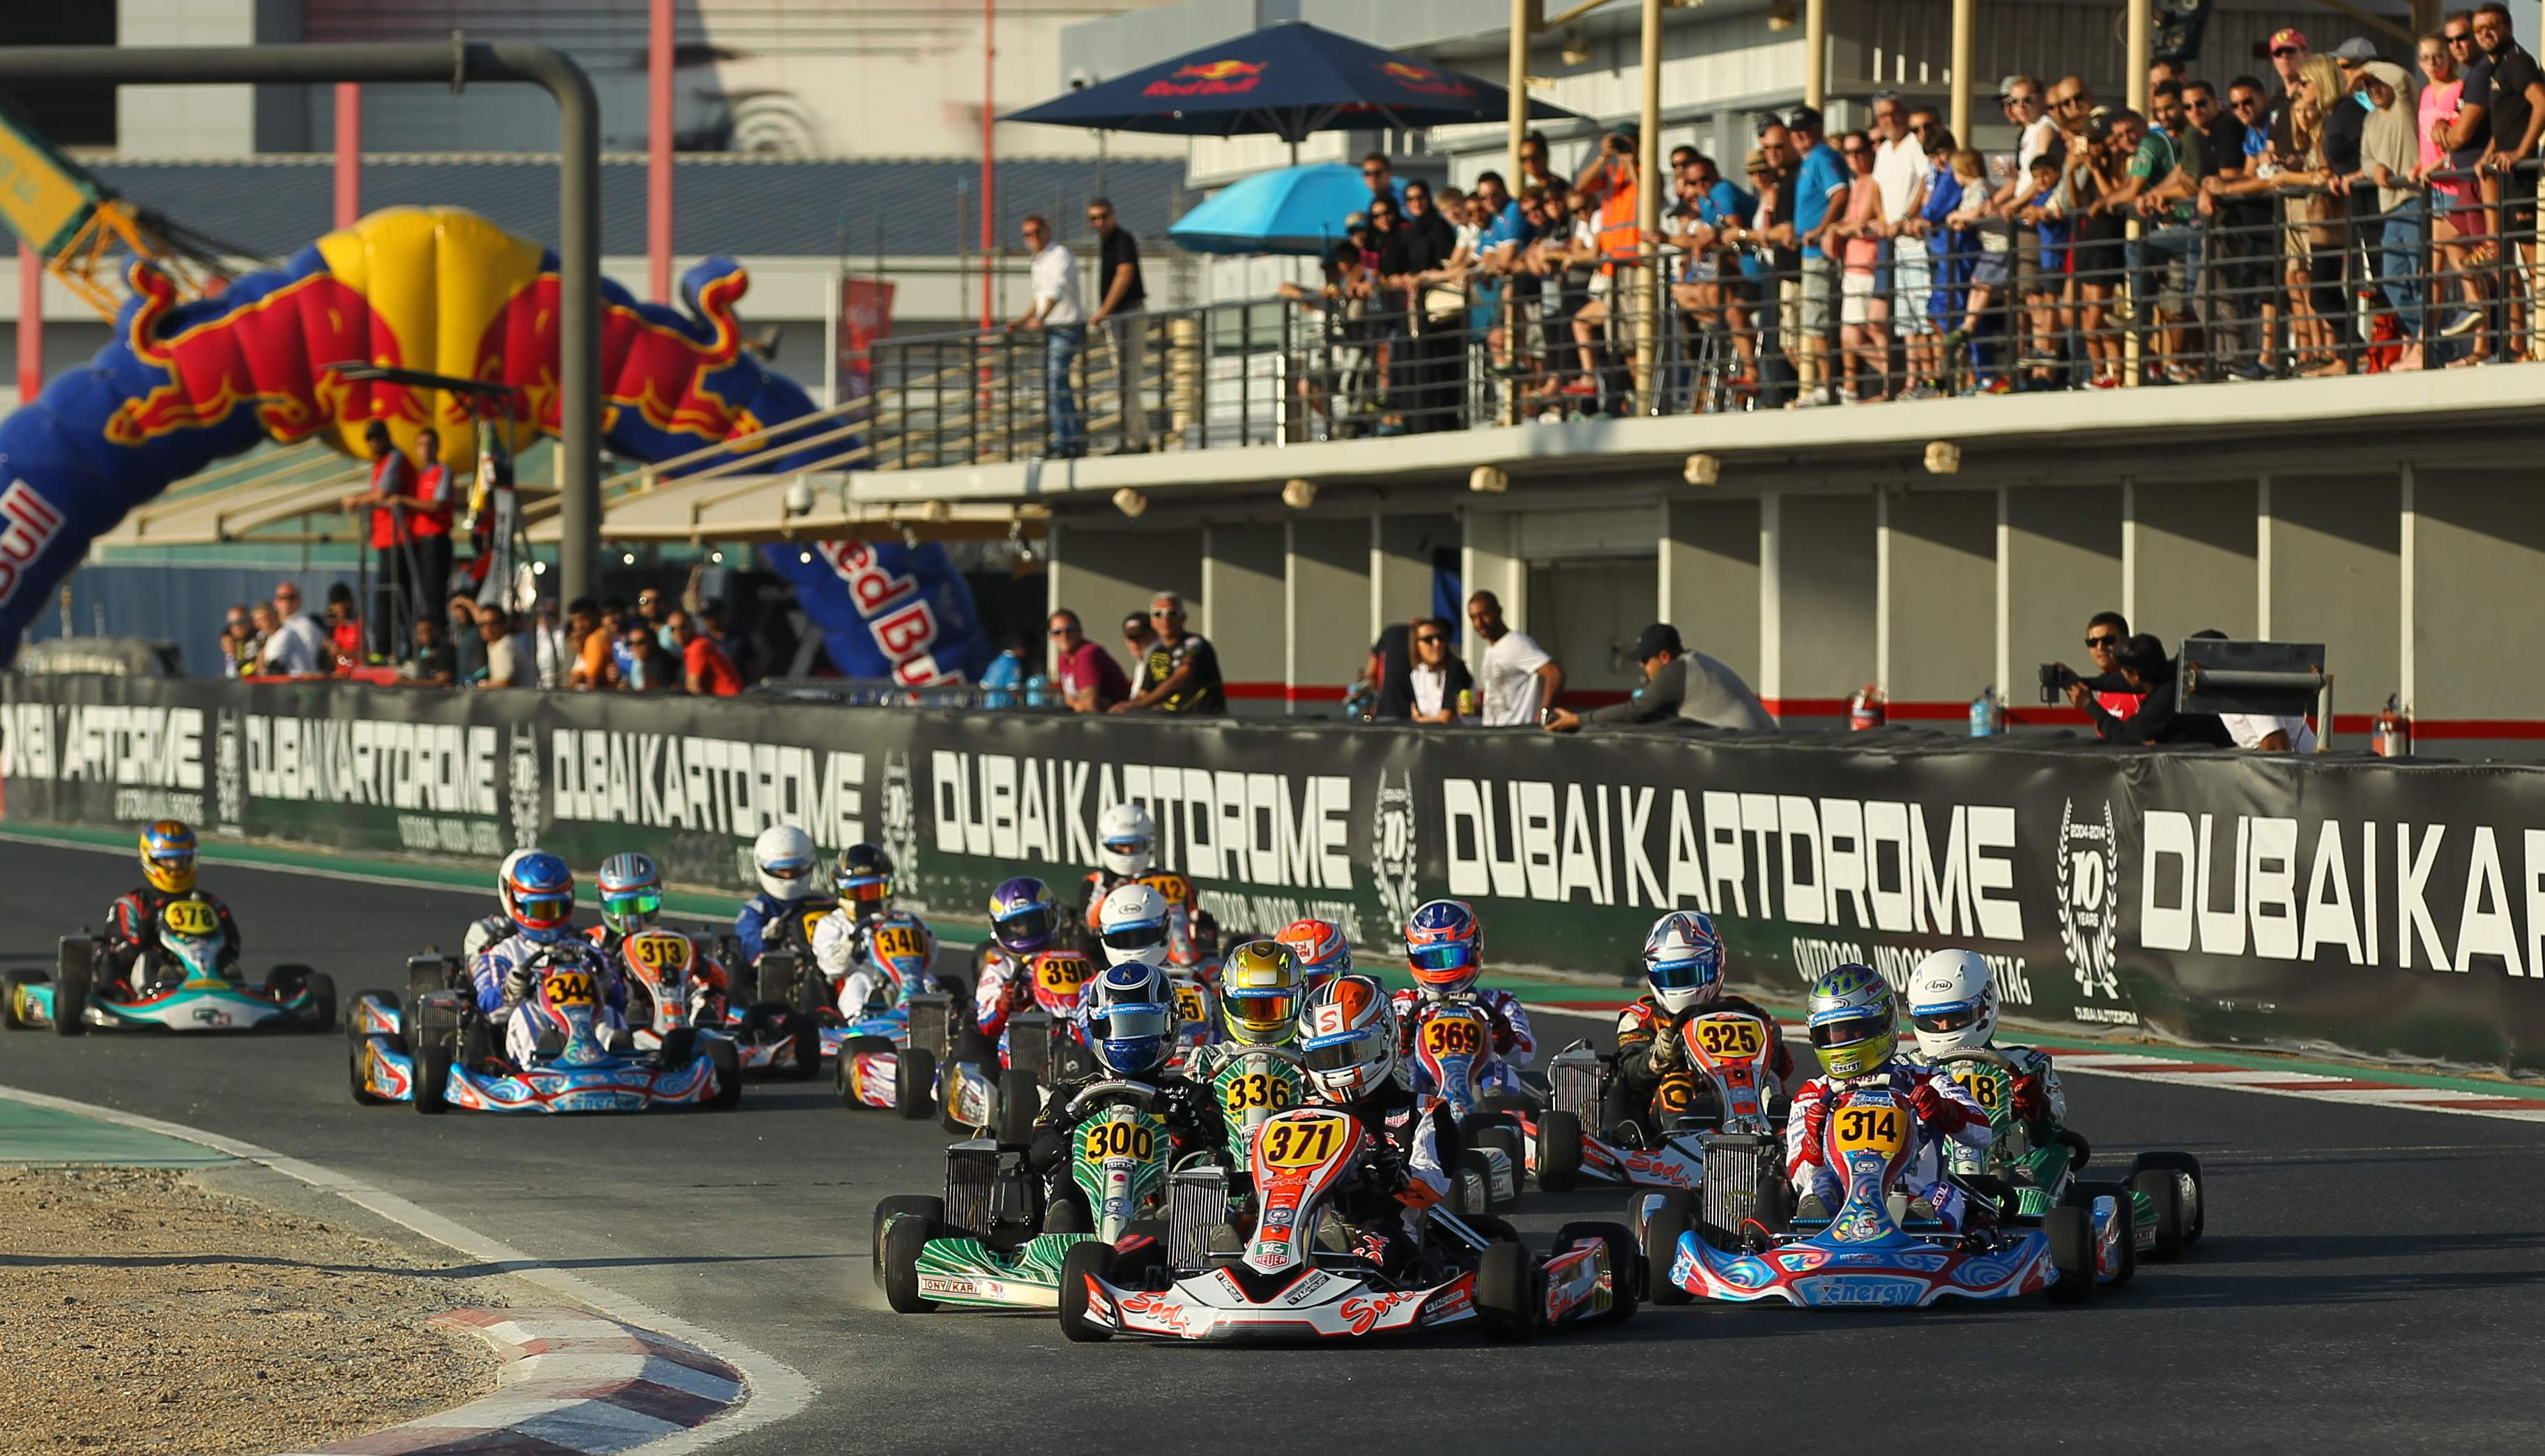 Karting: Action packed racing during the second edition of the O-Plate race day